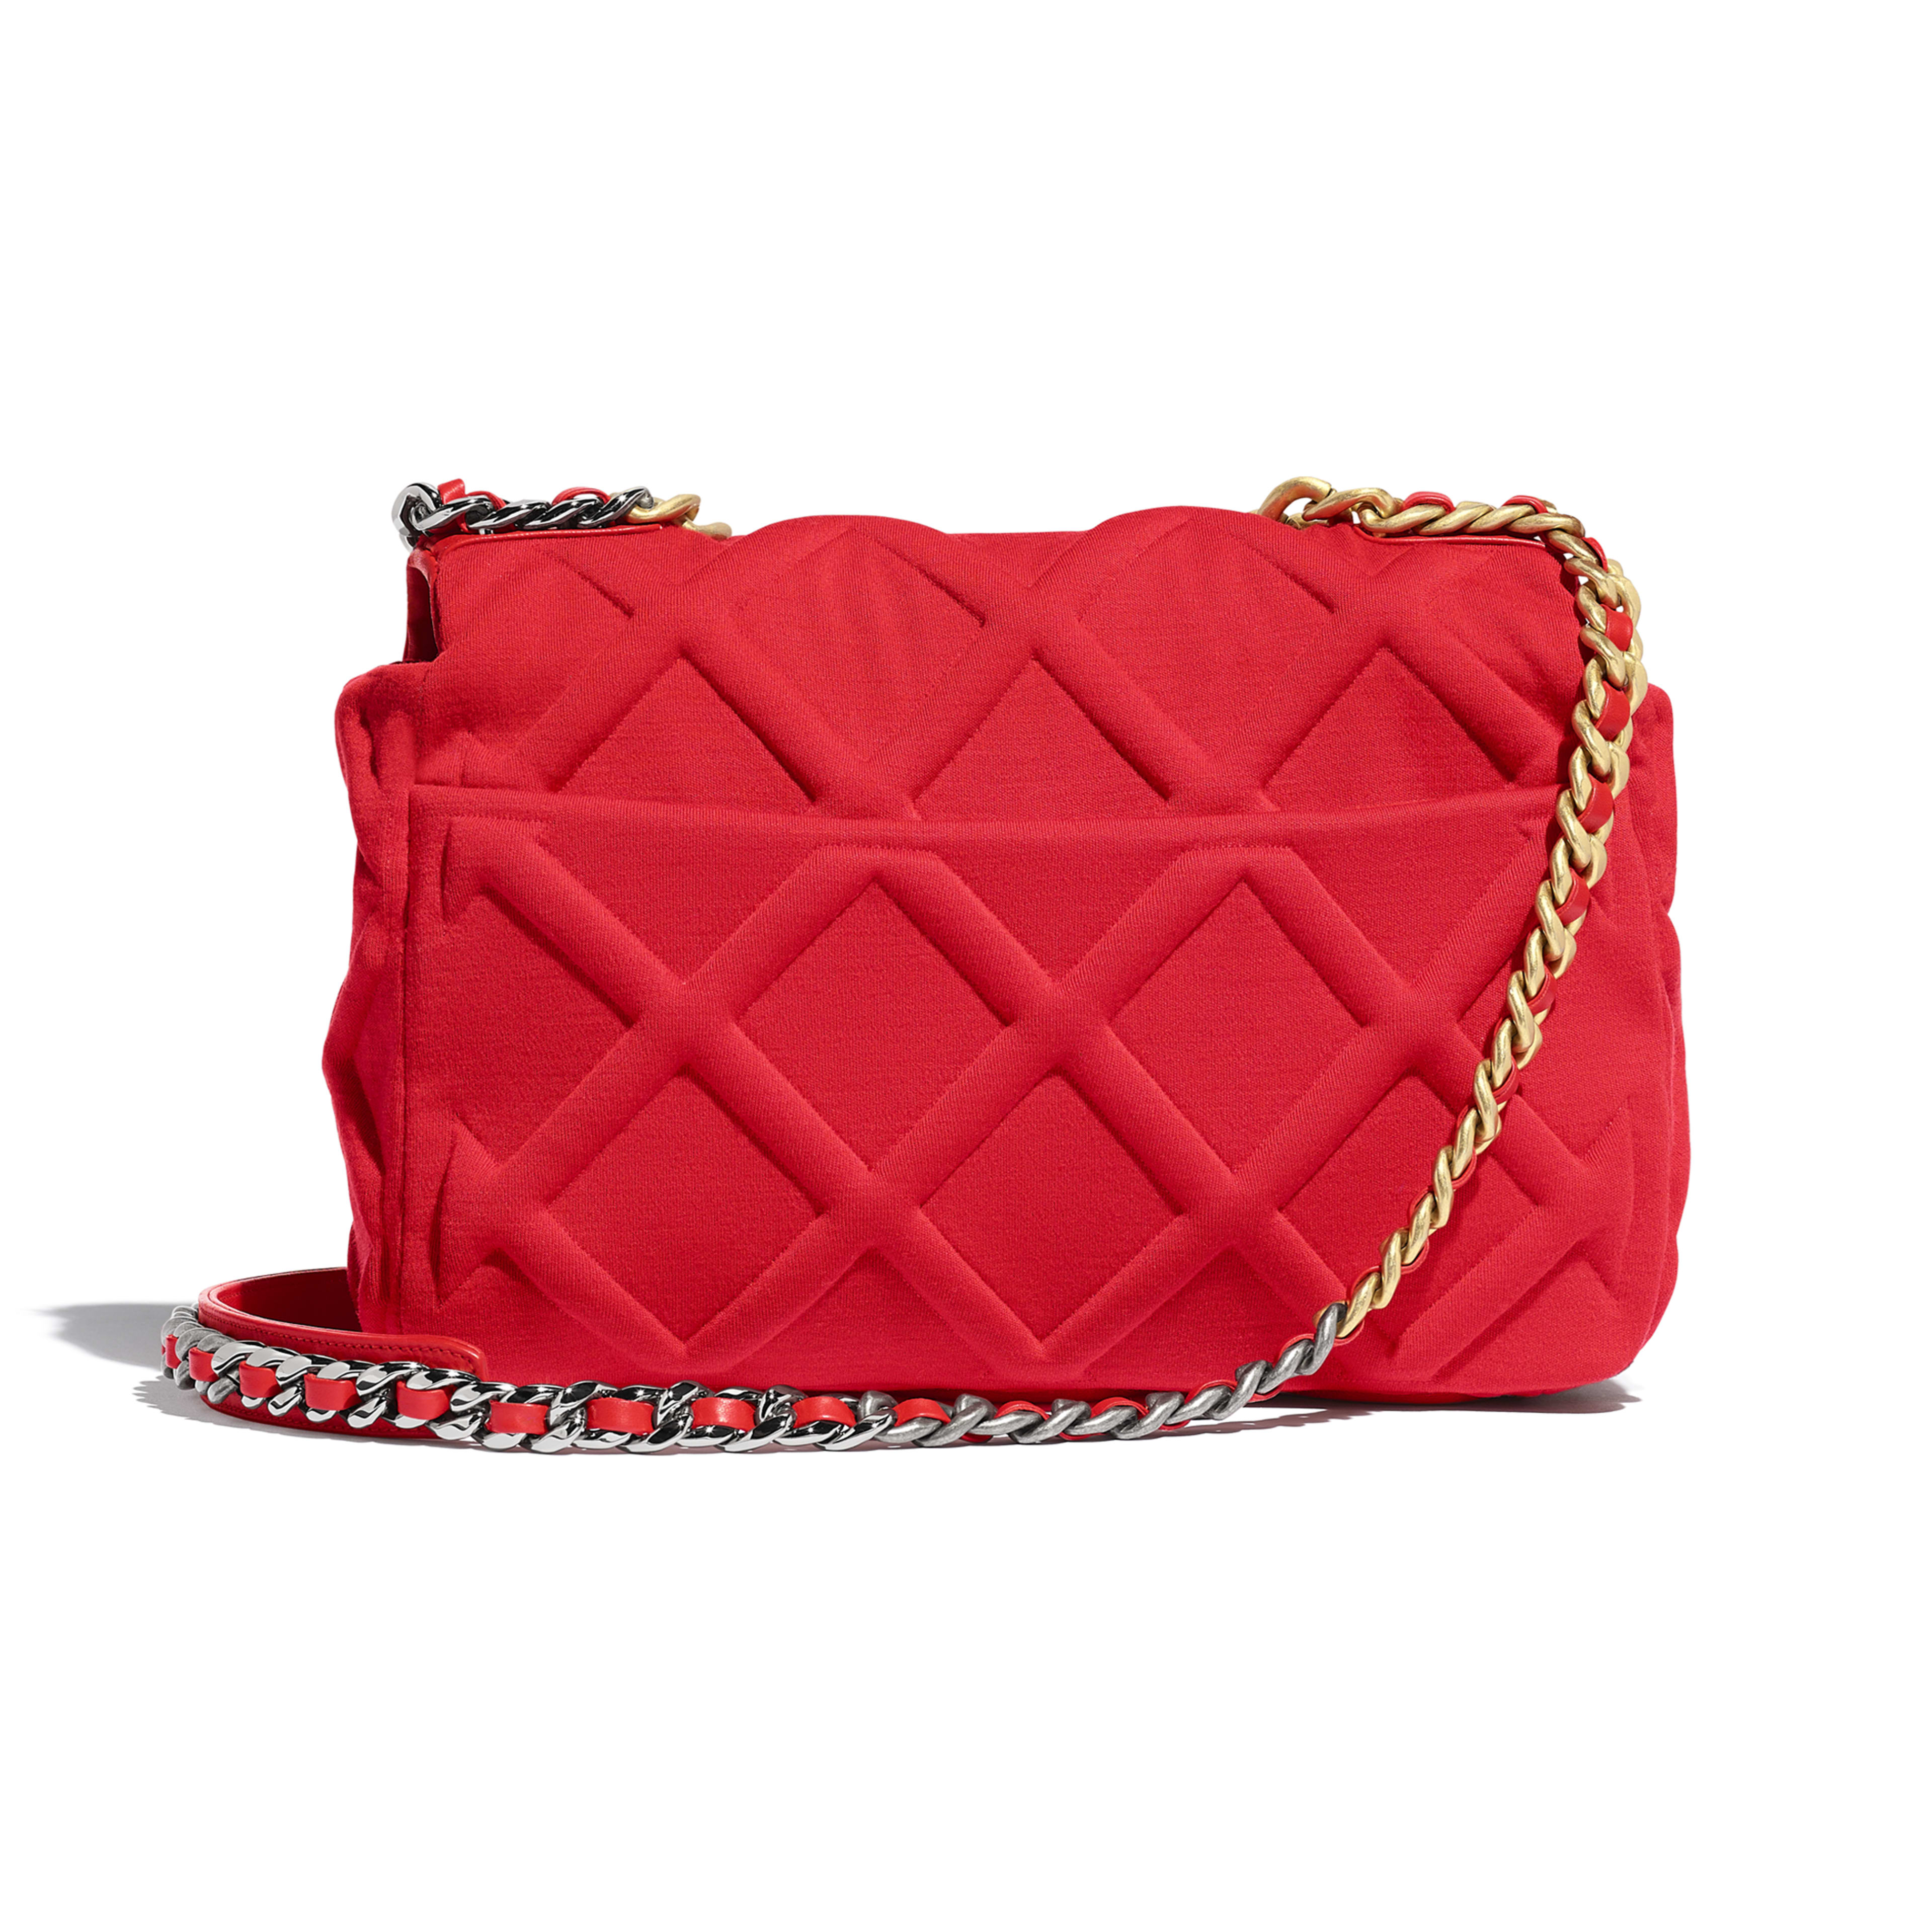 CHANEL 19 Large Flap Bag - Red - Jersey, Gold-Tone, Silver-Tone & Ruthenium-Finish Metal - Alternative view - see full sized version